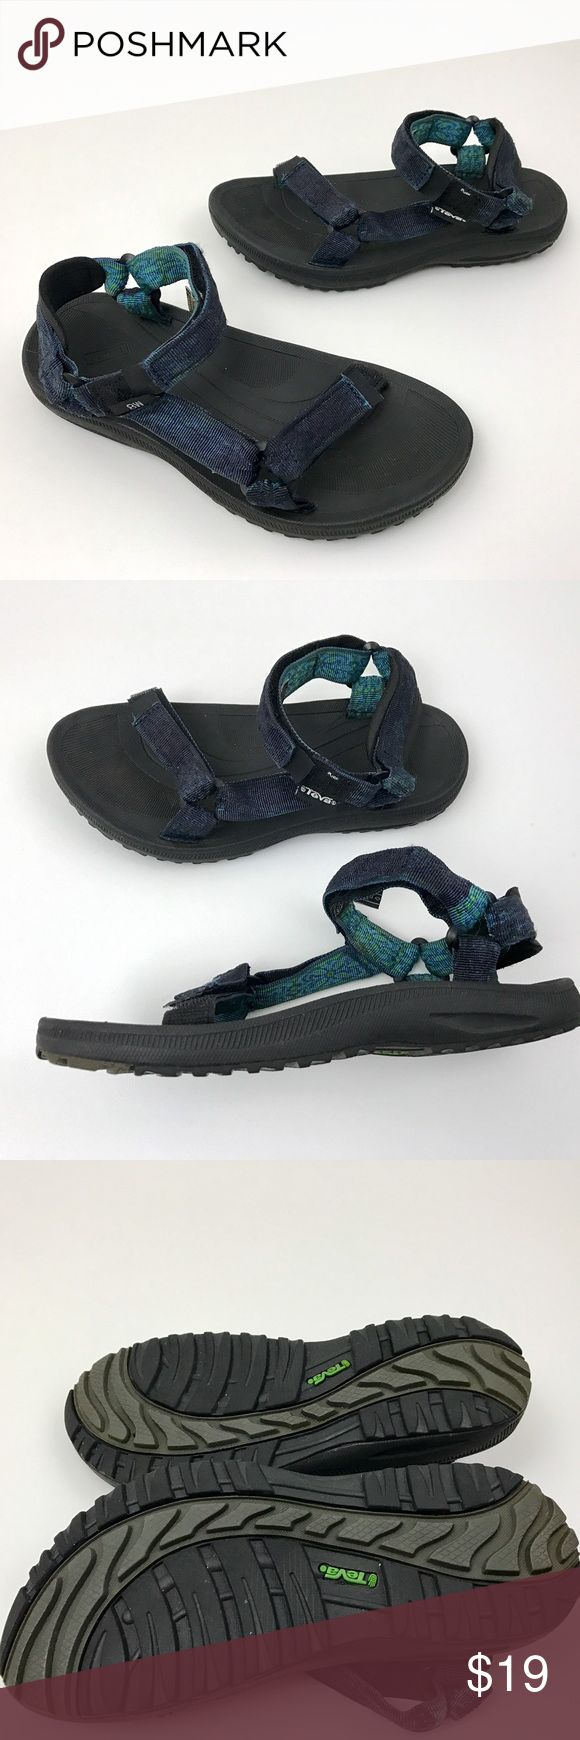 TEVA Sport Velcro Sandals TEVA Women's Sport Sandals Green Blue Velcro Closure   Size 8 W Shoes   Pre Owned Sandals, in Good Condition Has Signs of Being Worn  Original Box is Not Included     Item comes from a pet free/smoke free clean environment please contact me for any additional questions Teva Shoes Sandals